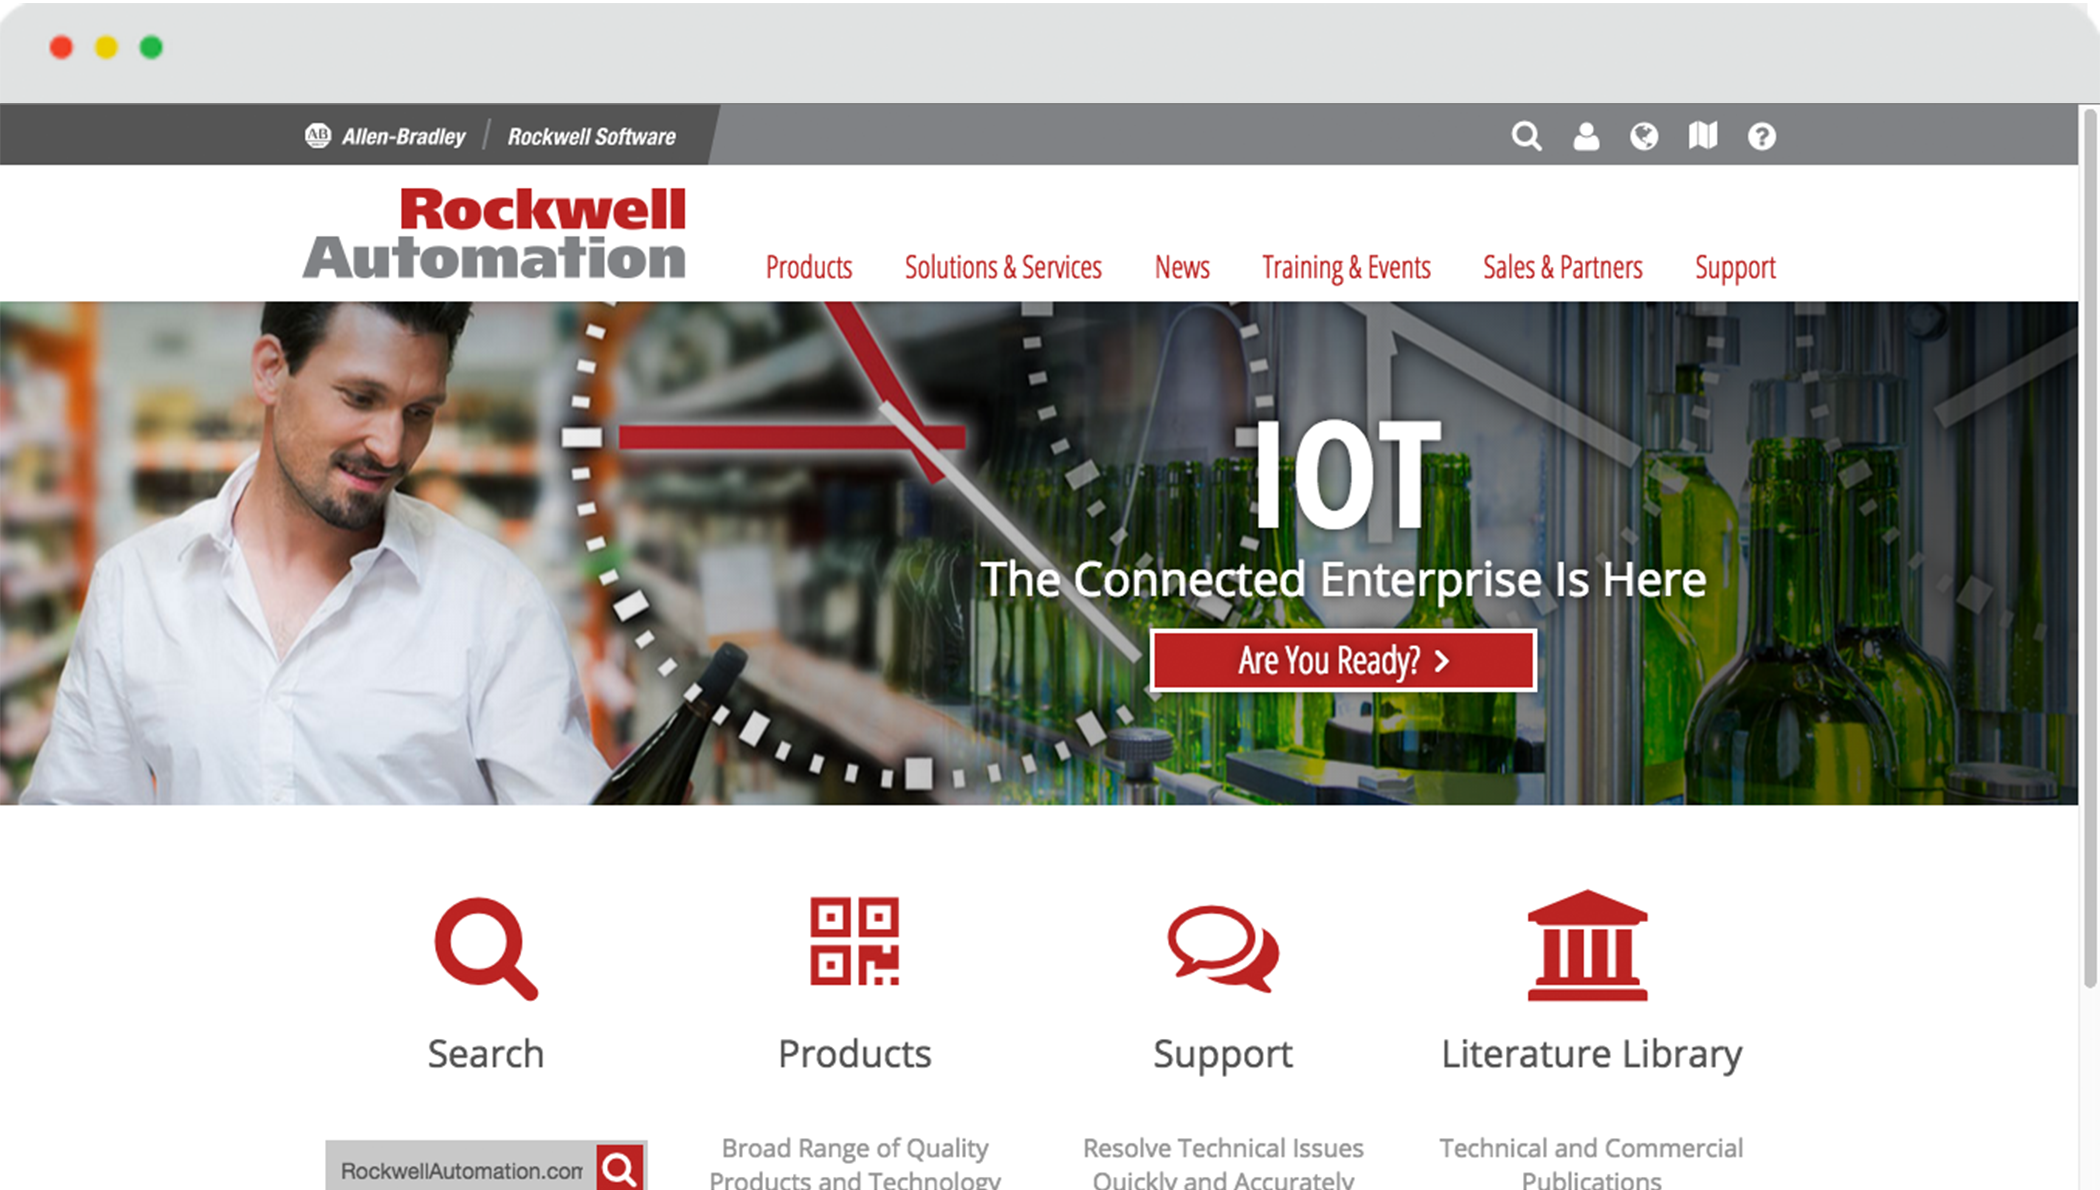 Rockwell Automation uses Bound to Enable Cross-Channel